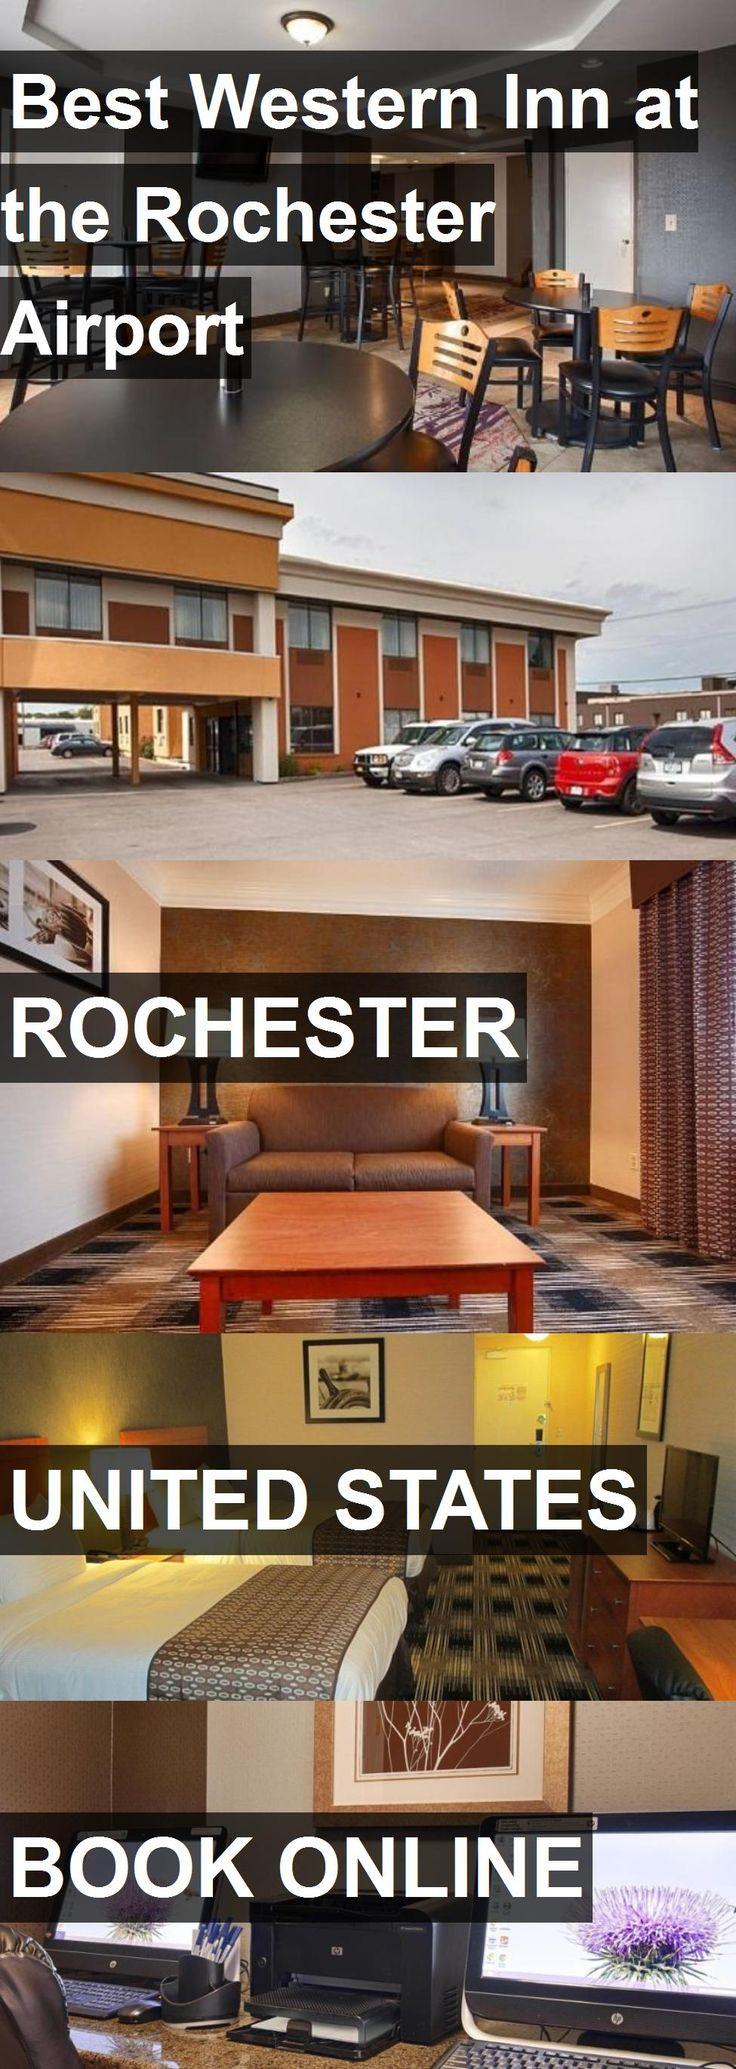 Hotel Best Western Inn at the Rochester Airport in Rochester, United States. For more information, photos, reviews and best prices please follow the link. #UnitedStates #Rochester #travel #vacation #hotel